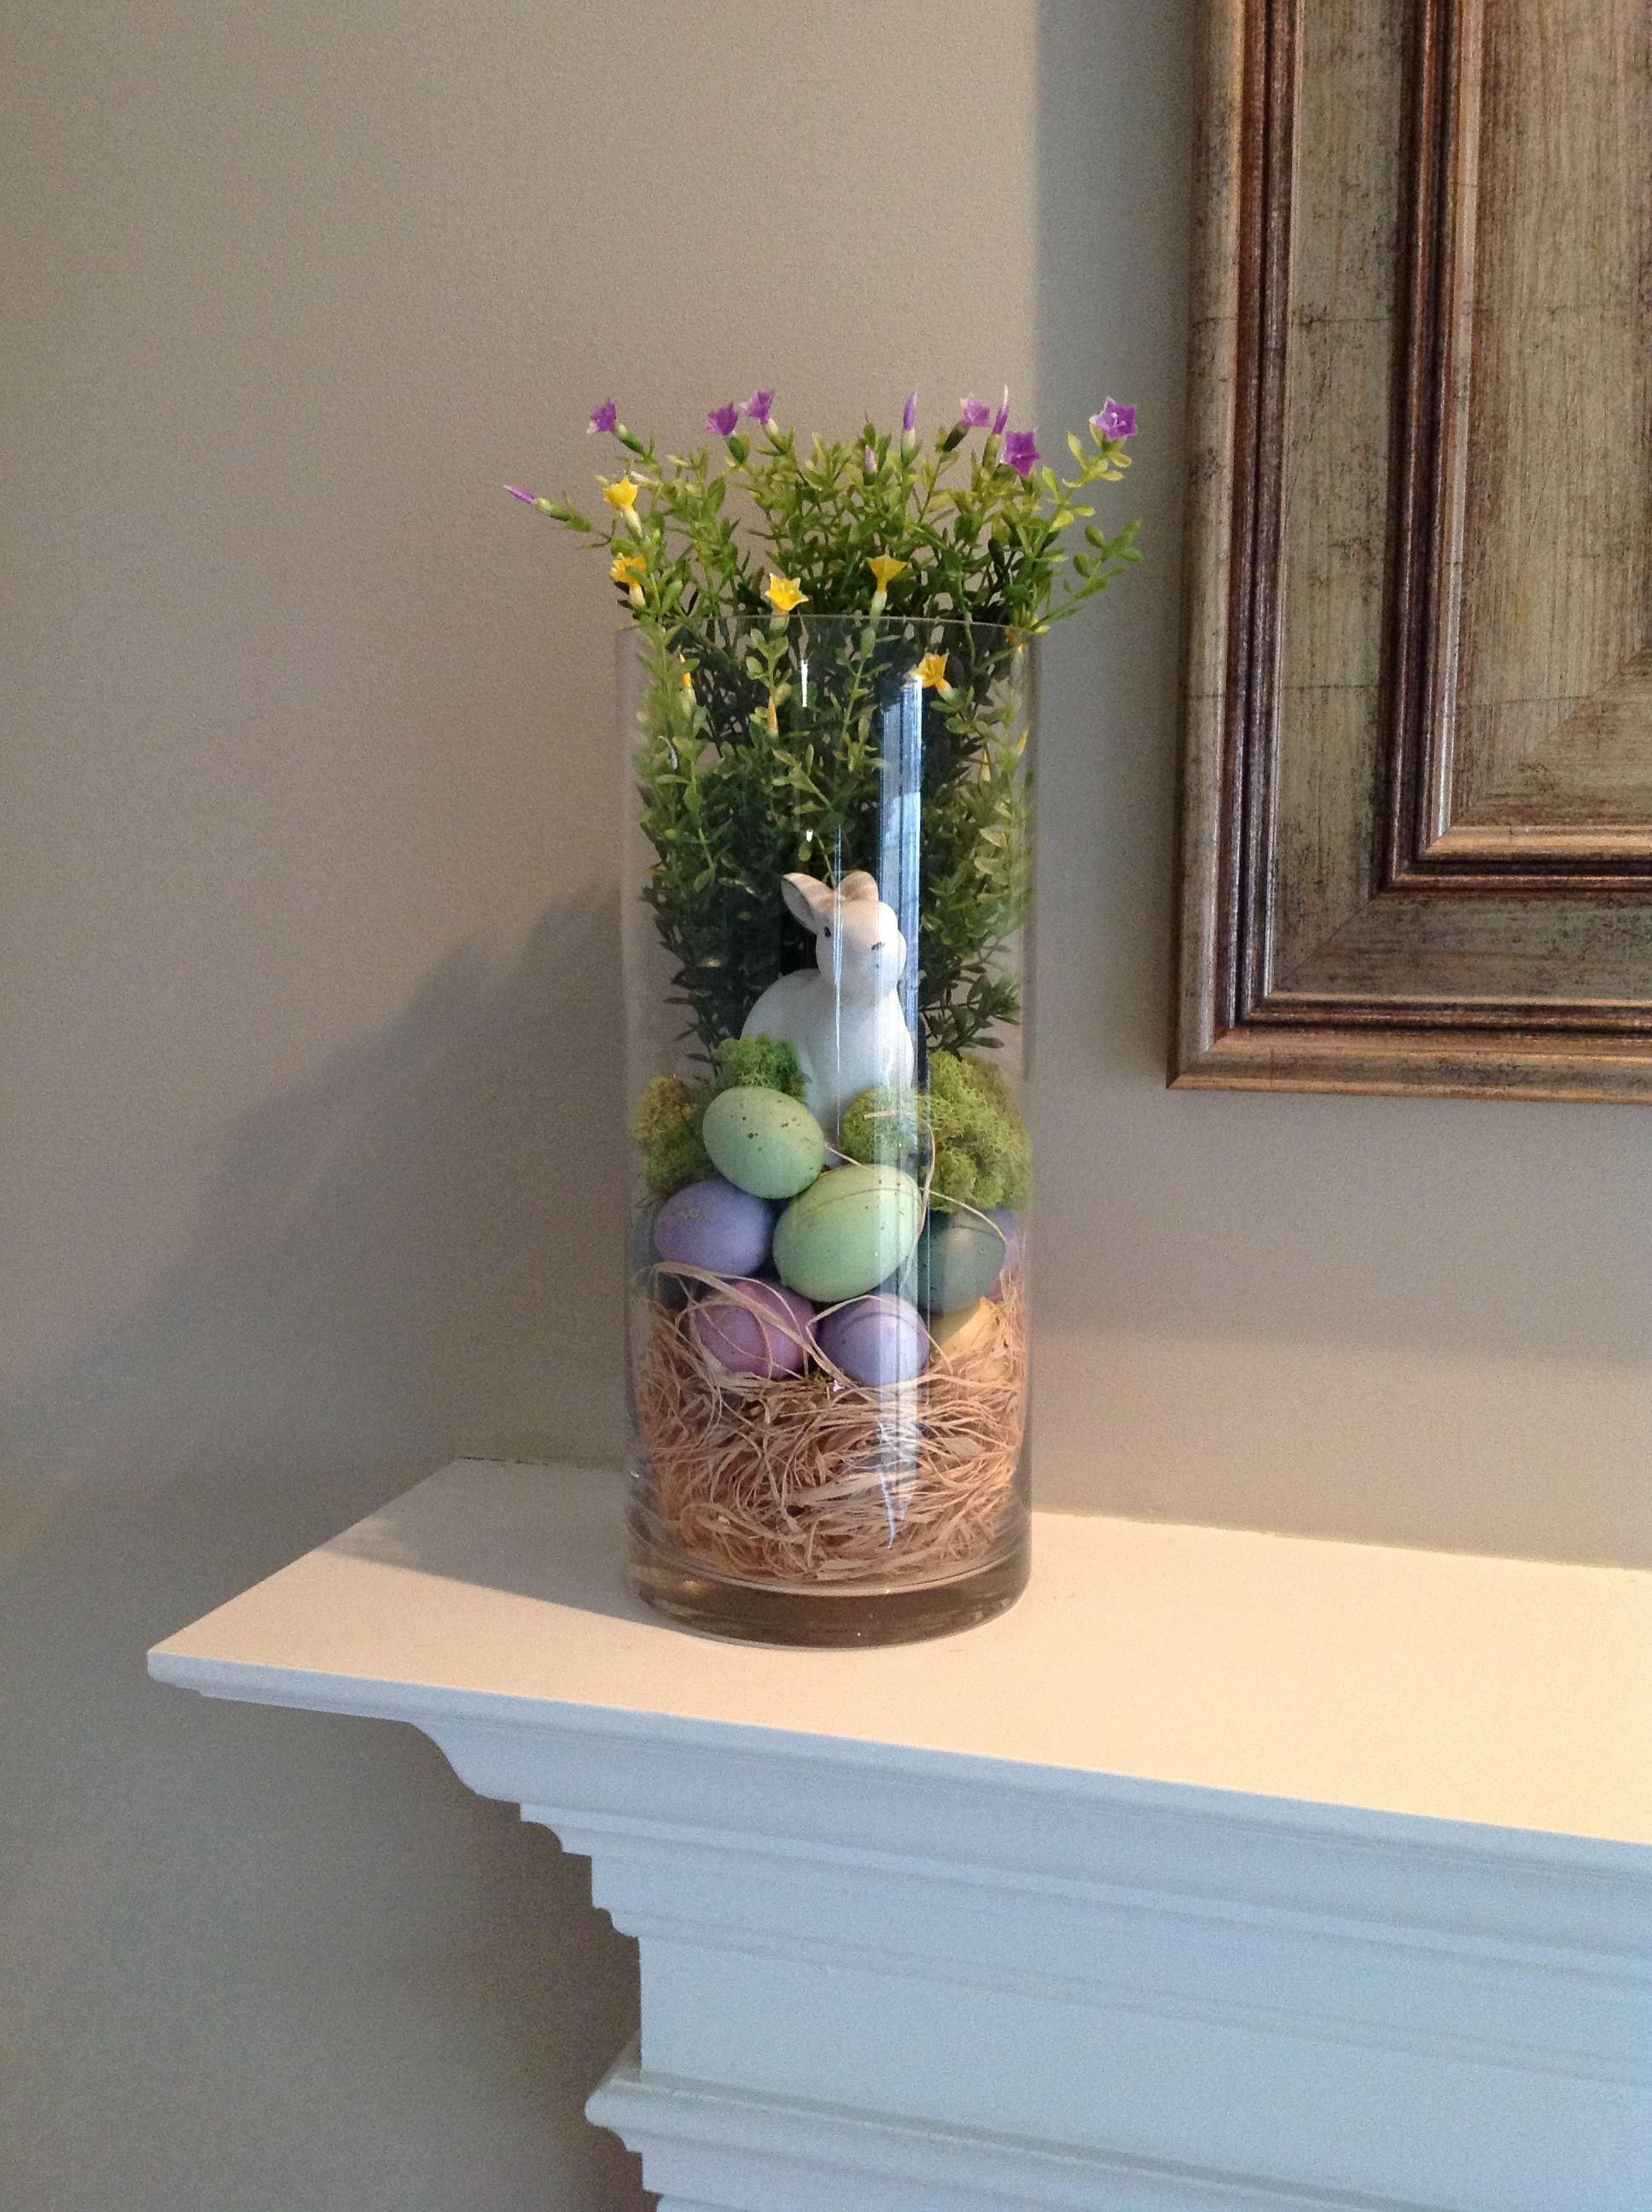 spring vase filler ideas of hurricane glass vase filler for spring and easter on the mantel throughout hurricane glass vase filler for spring and easter on the mantel lori lubker pin easter hurricane rabbit